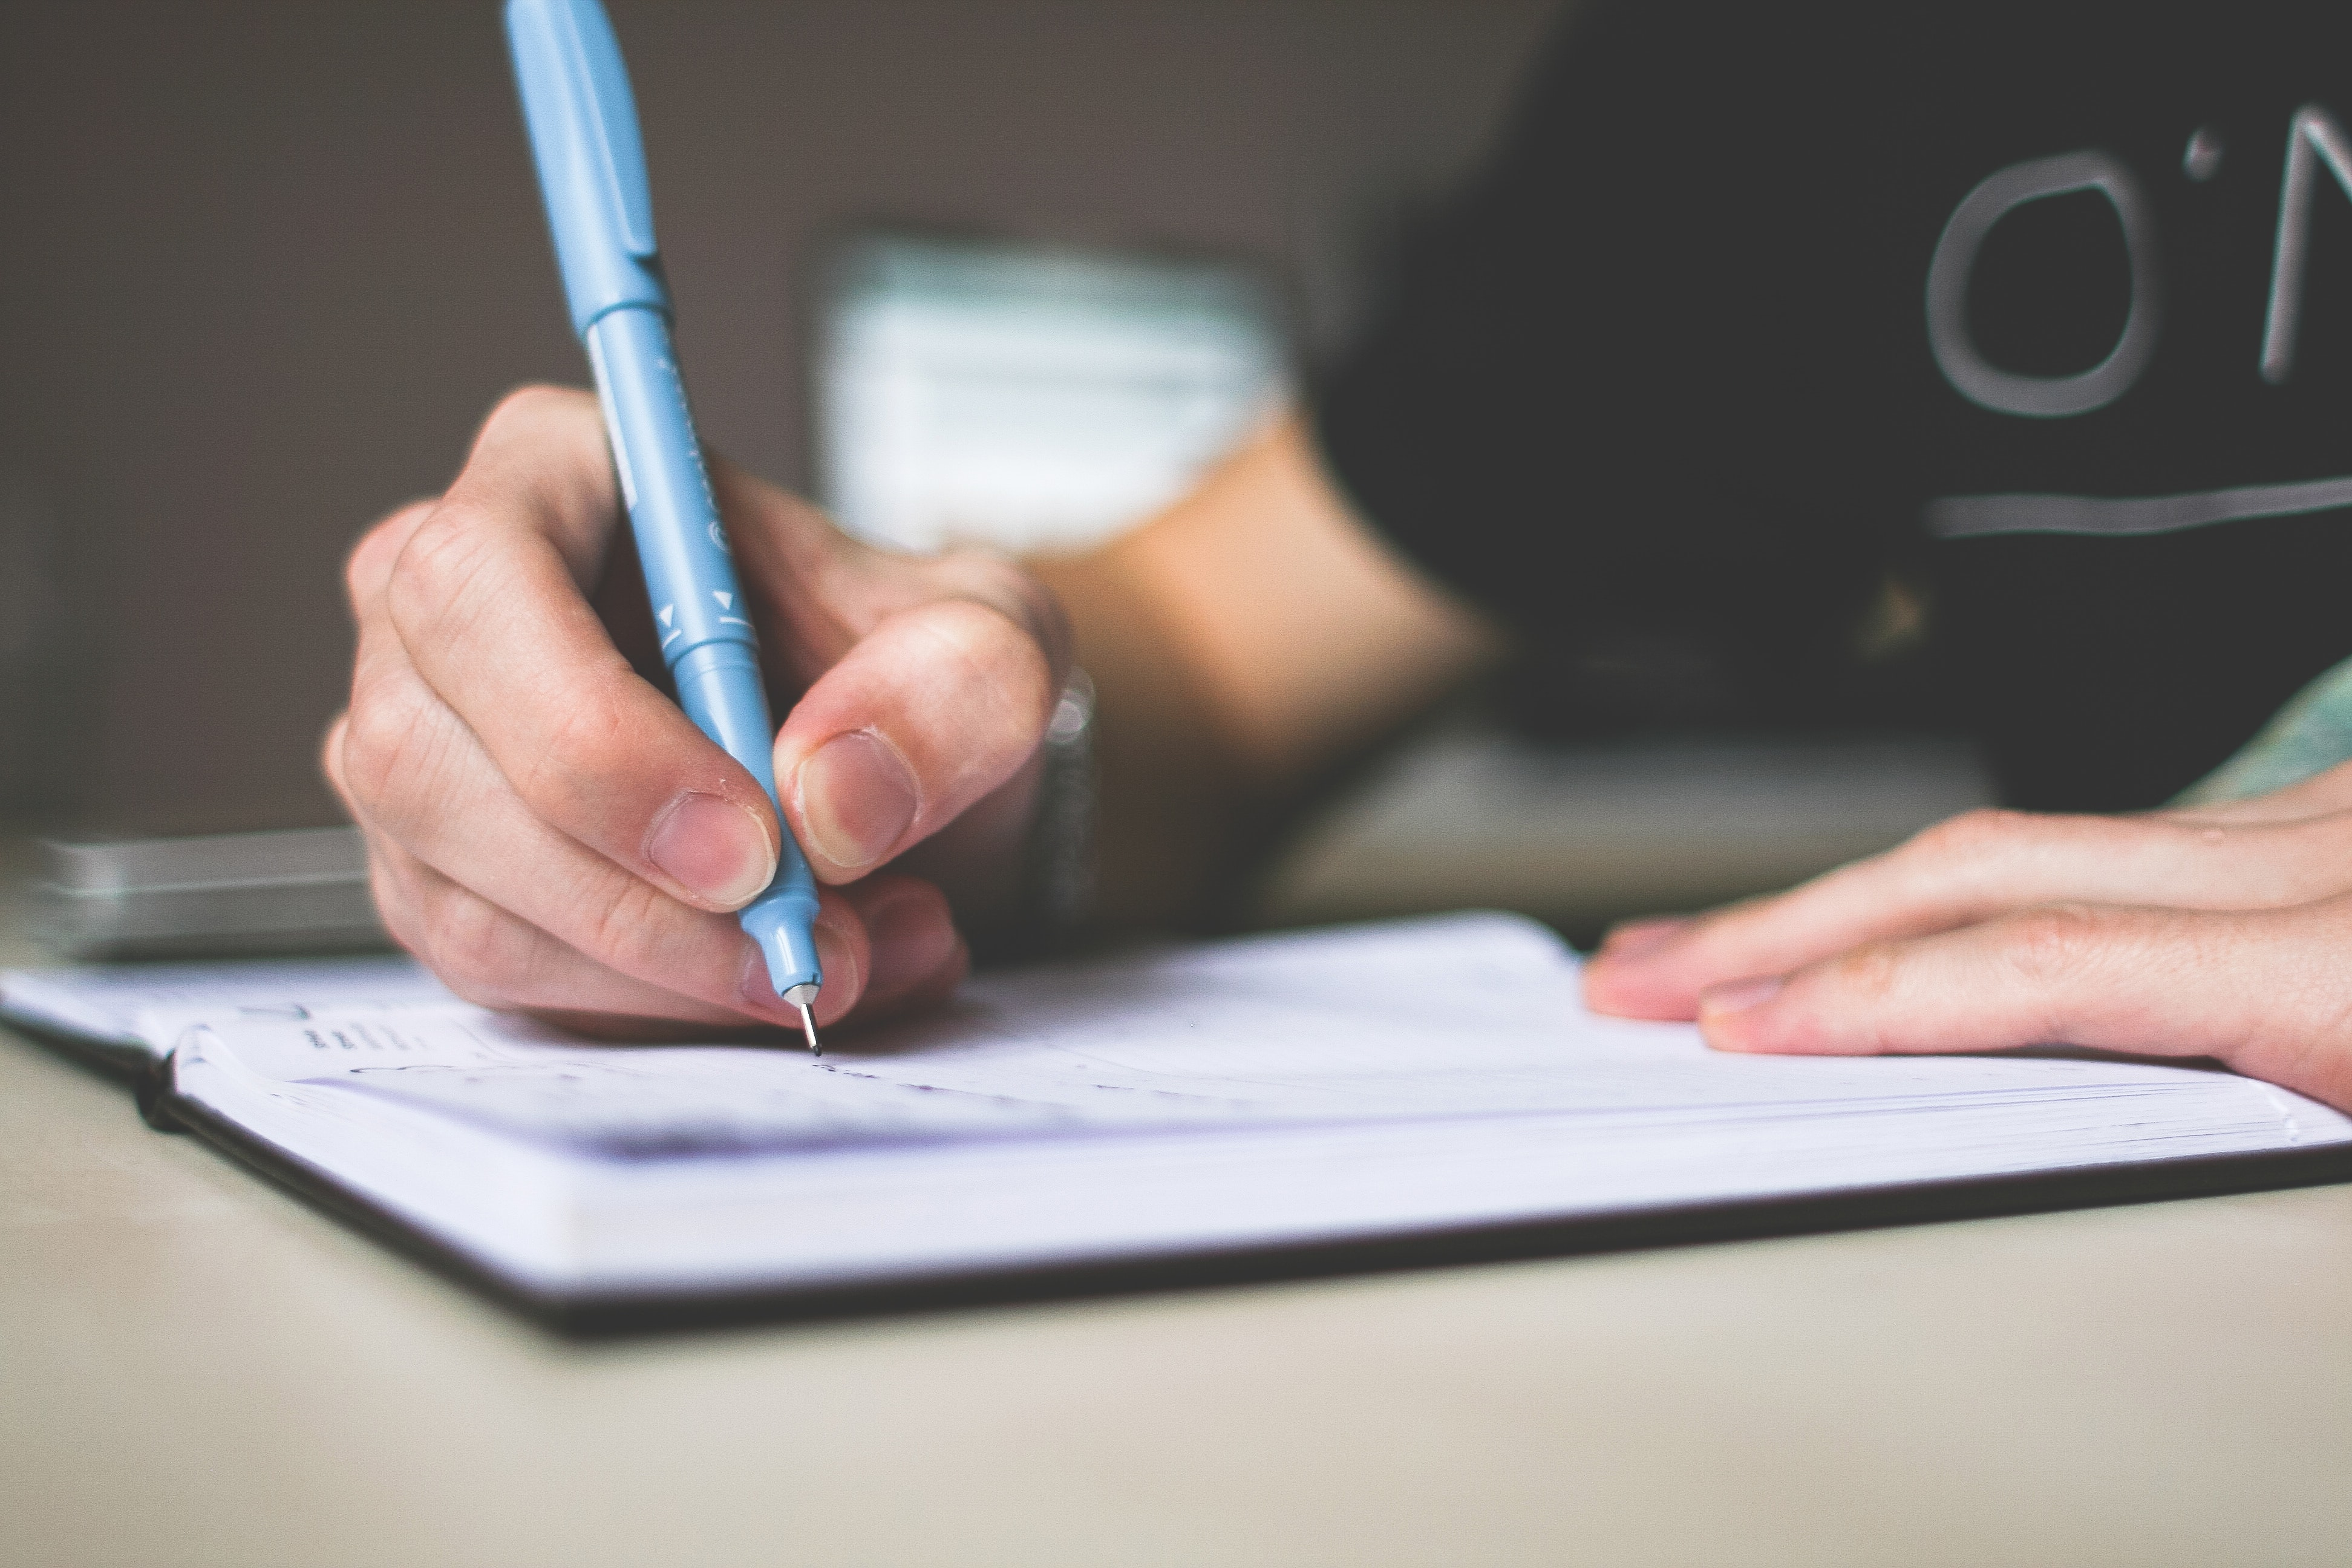 5 Tips To Writing A Great Essay In Graduate School